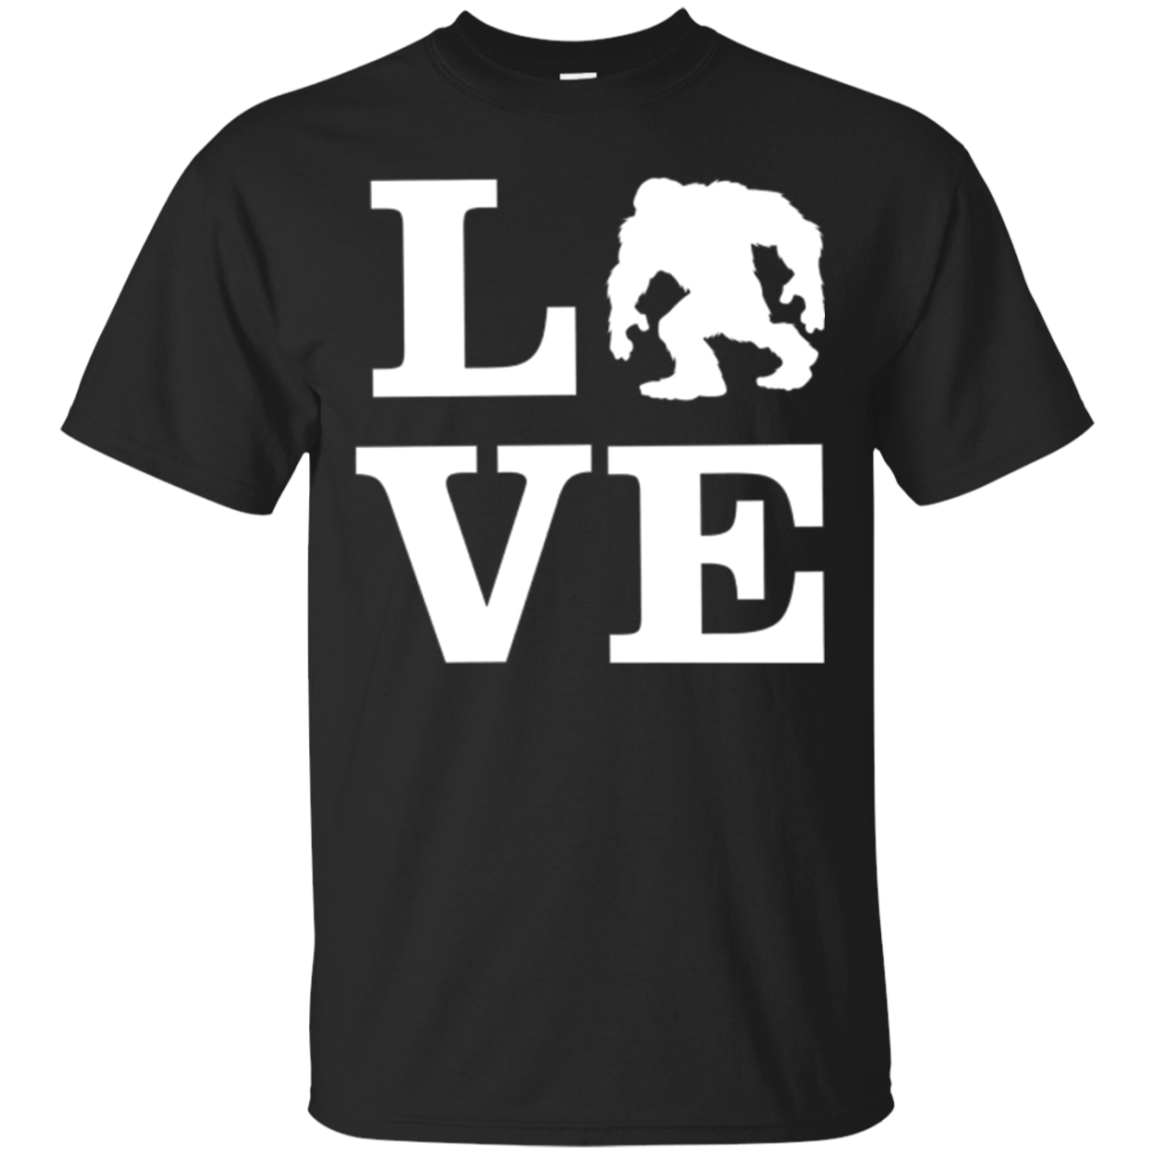 I love Bigfoot T Shirt I Believe in Bigfoot Gifts Tees